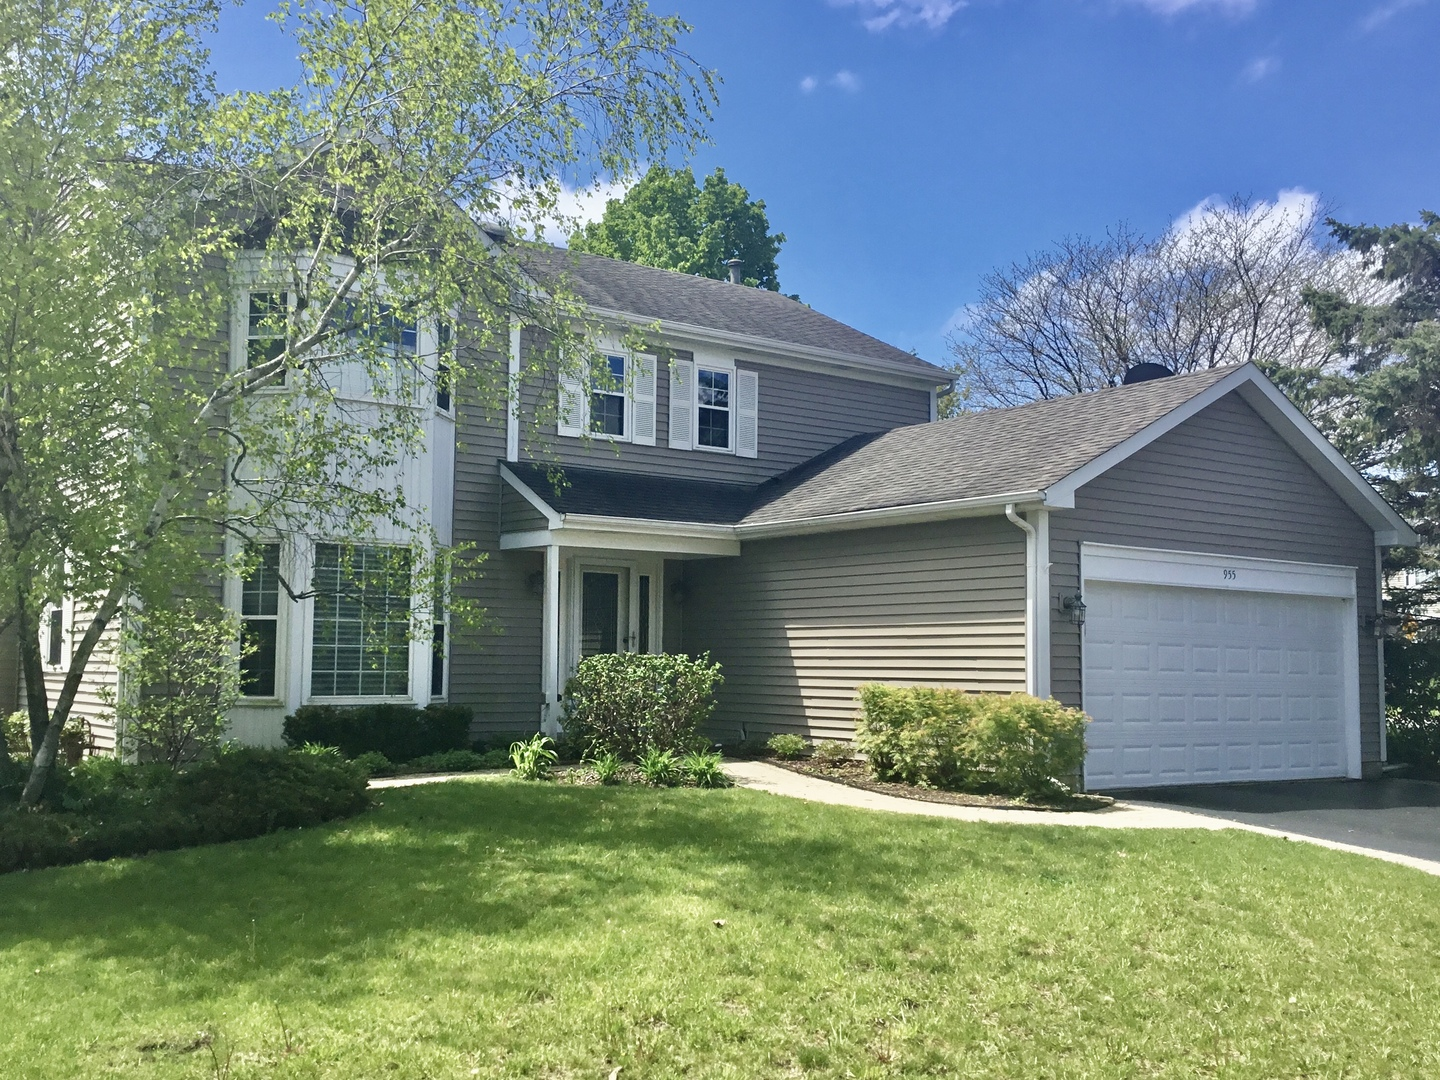 Photo for 955 Merrimac Street, Cary, IL 60013 (MLS # 10632151)